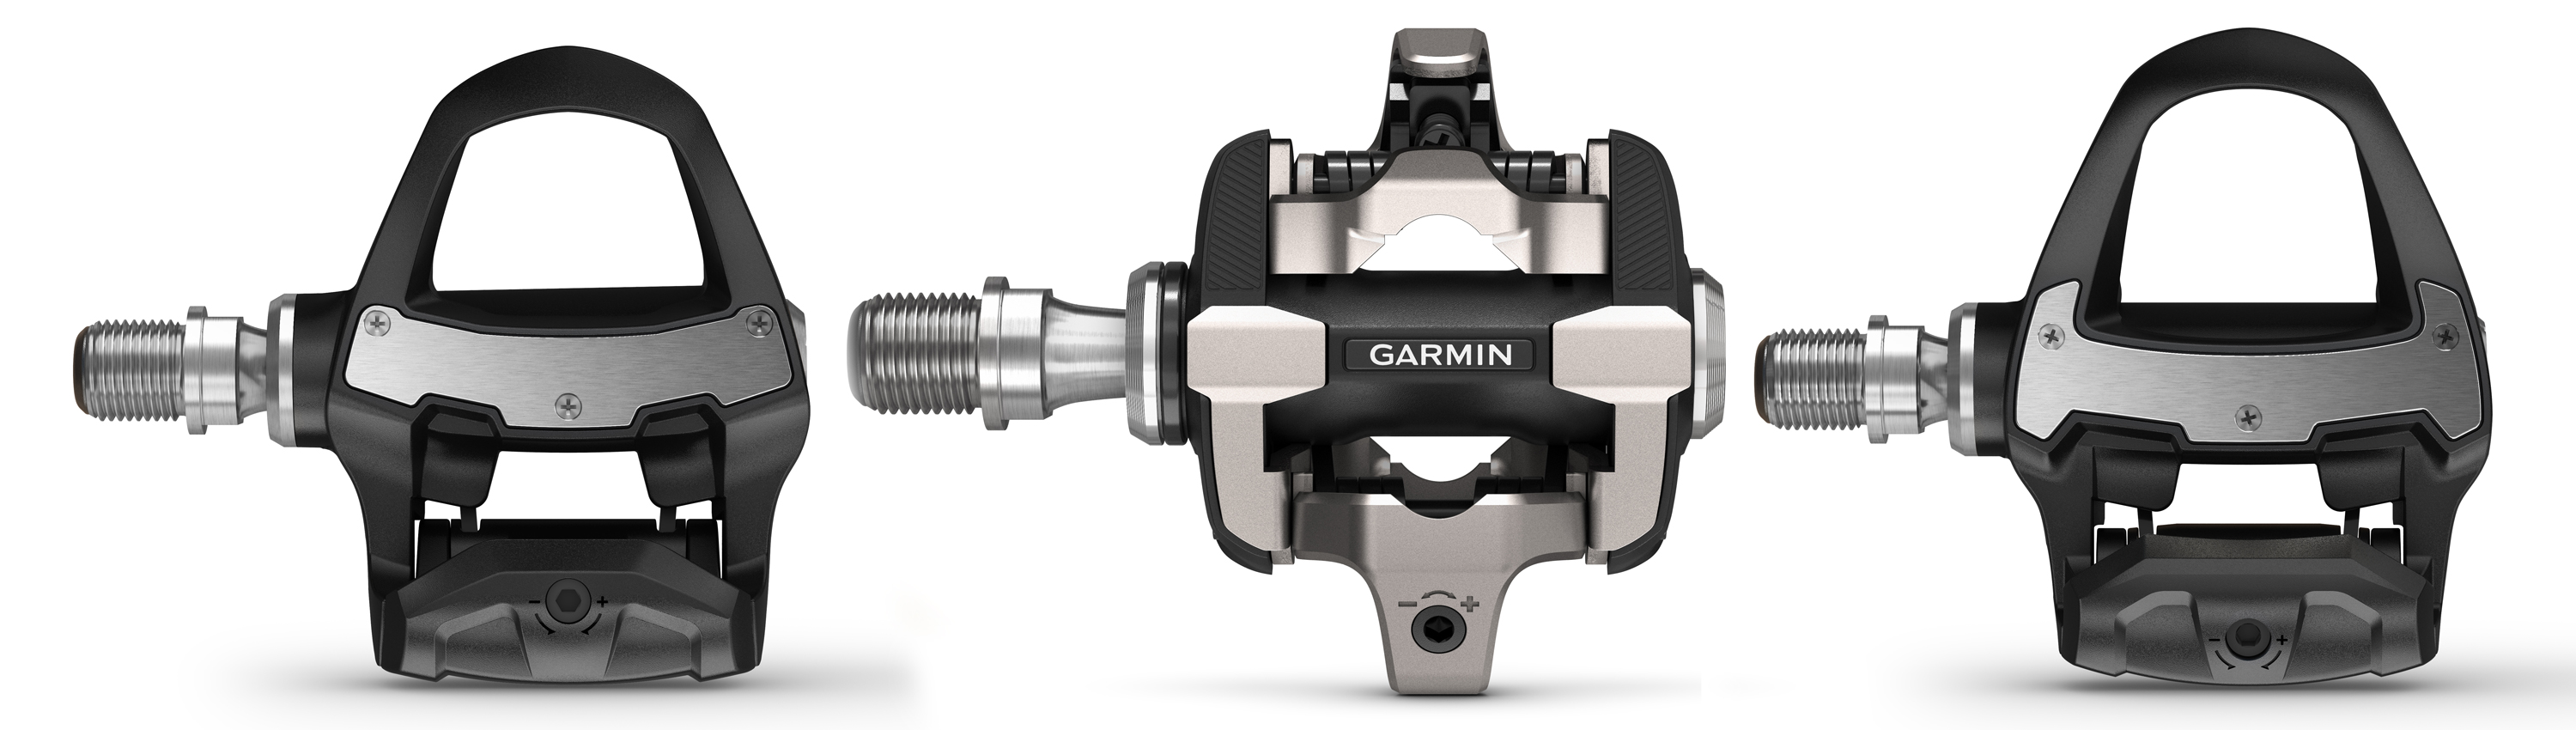 Garmin Rally RK XC RS pedal power meter